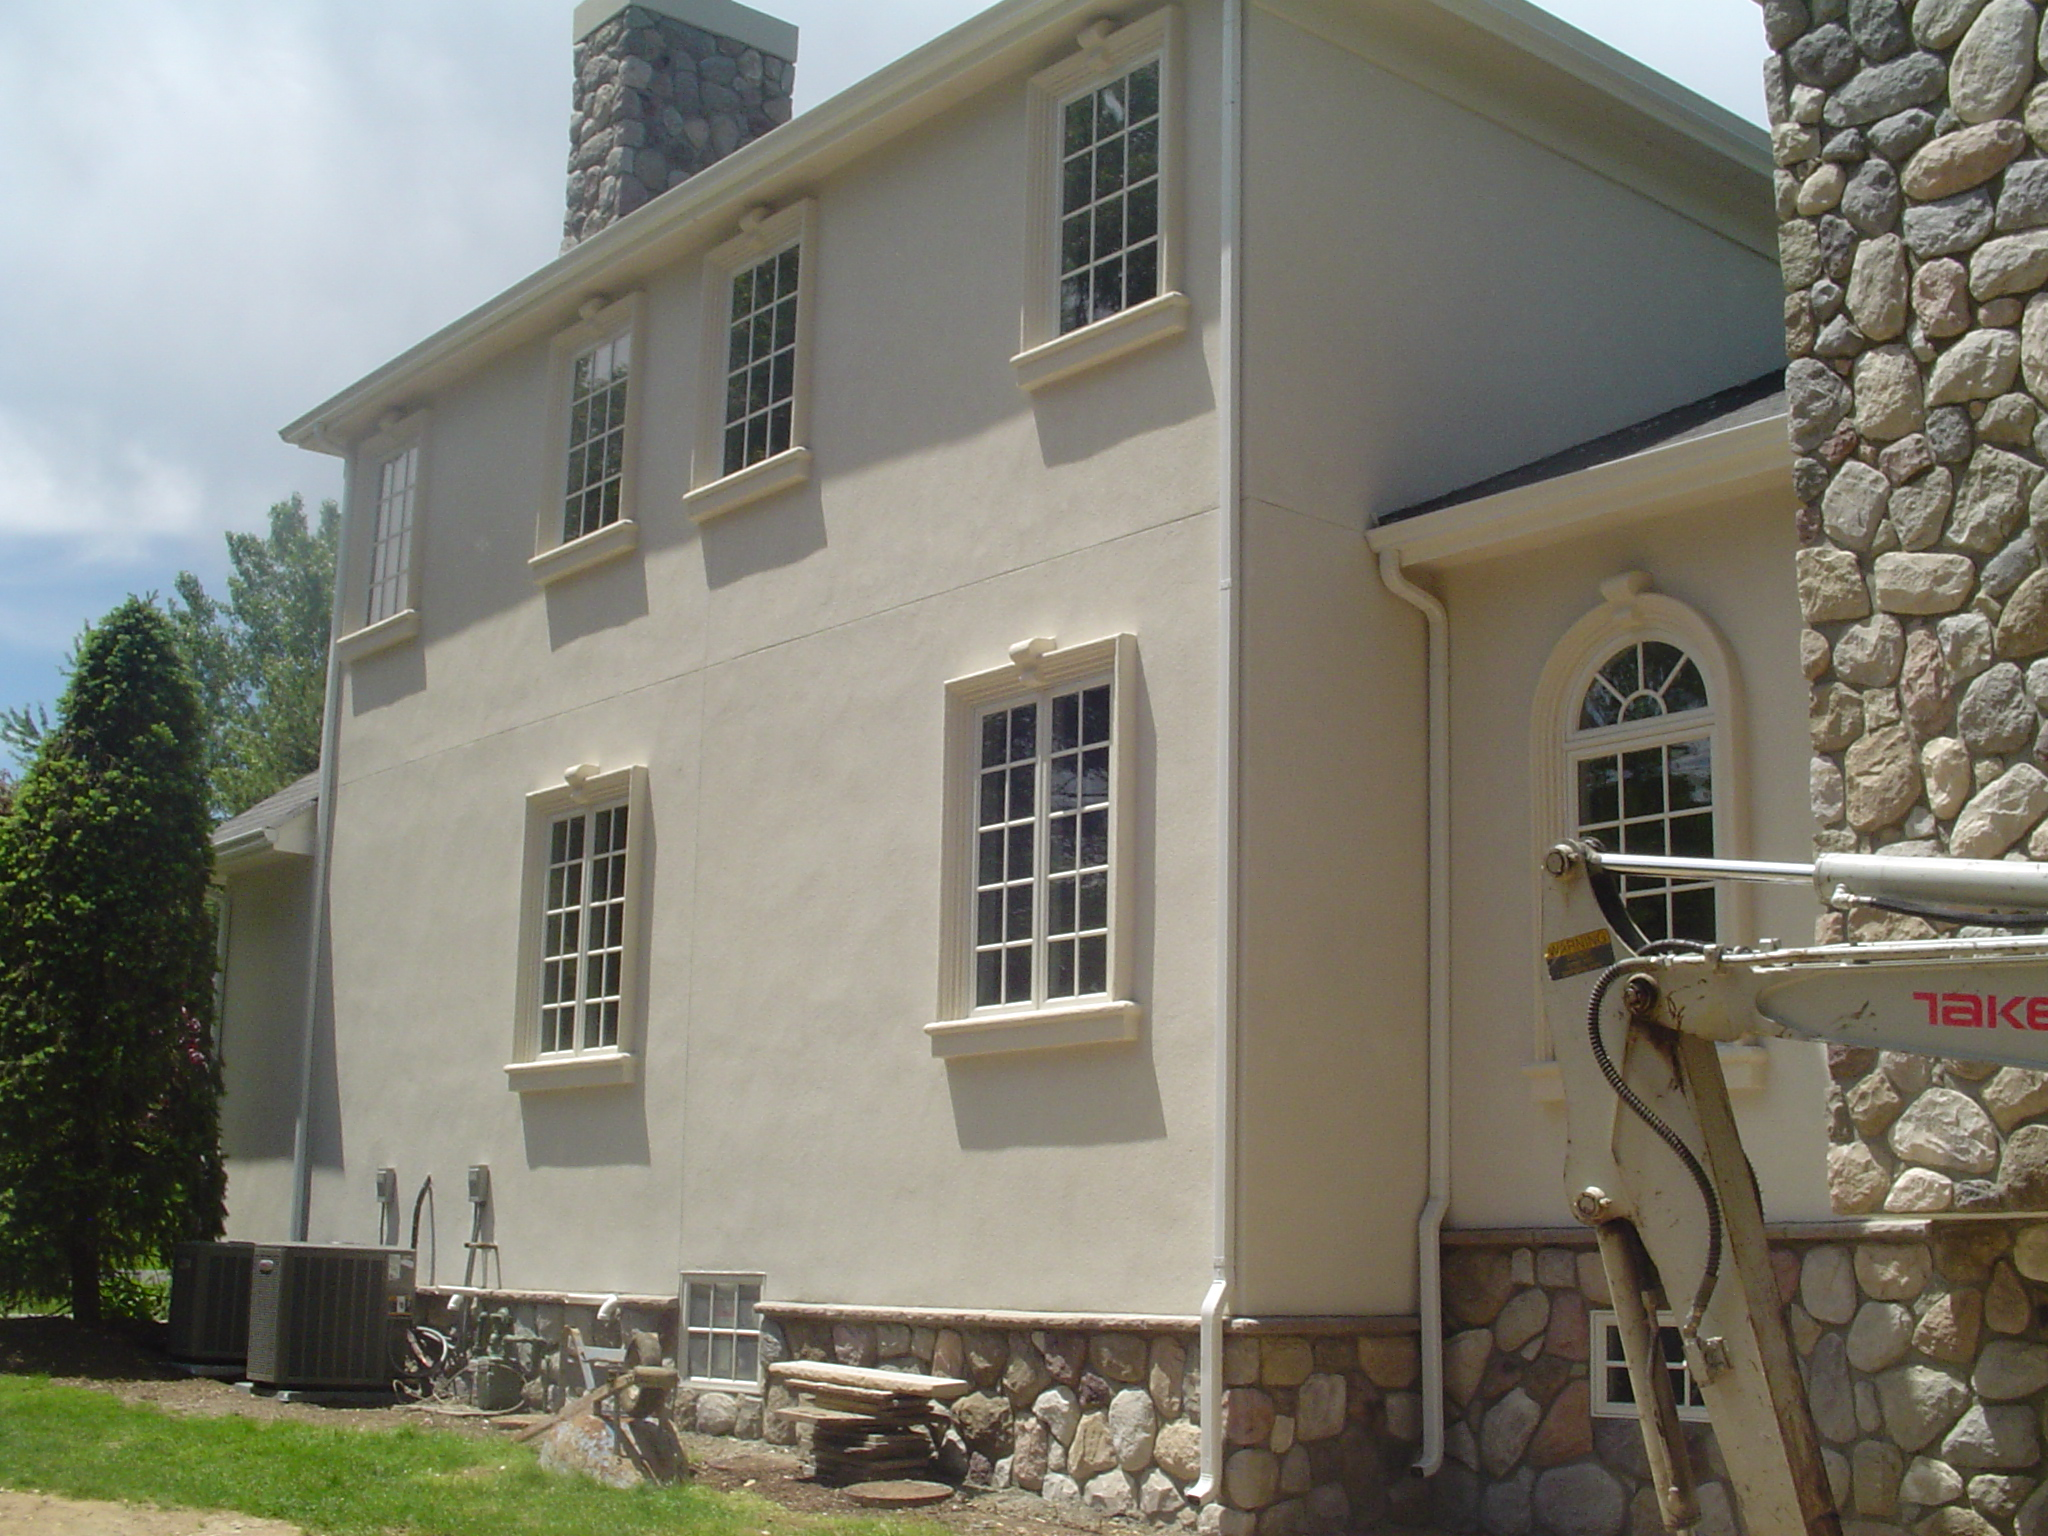 Hardcoat Stucco, Stone, Custom Trim Detail.